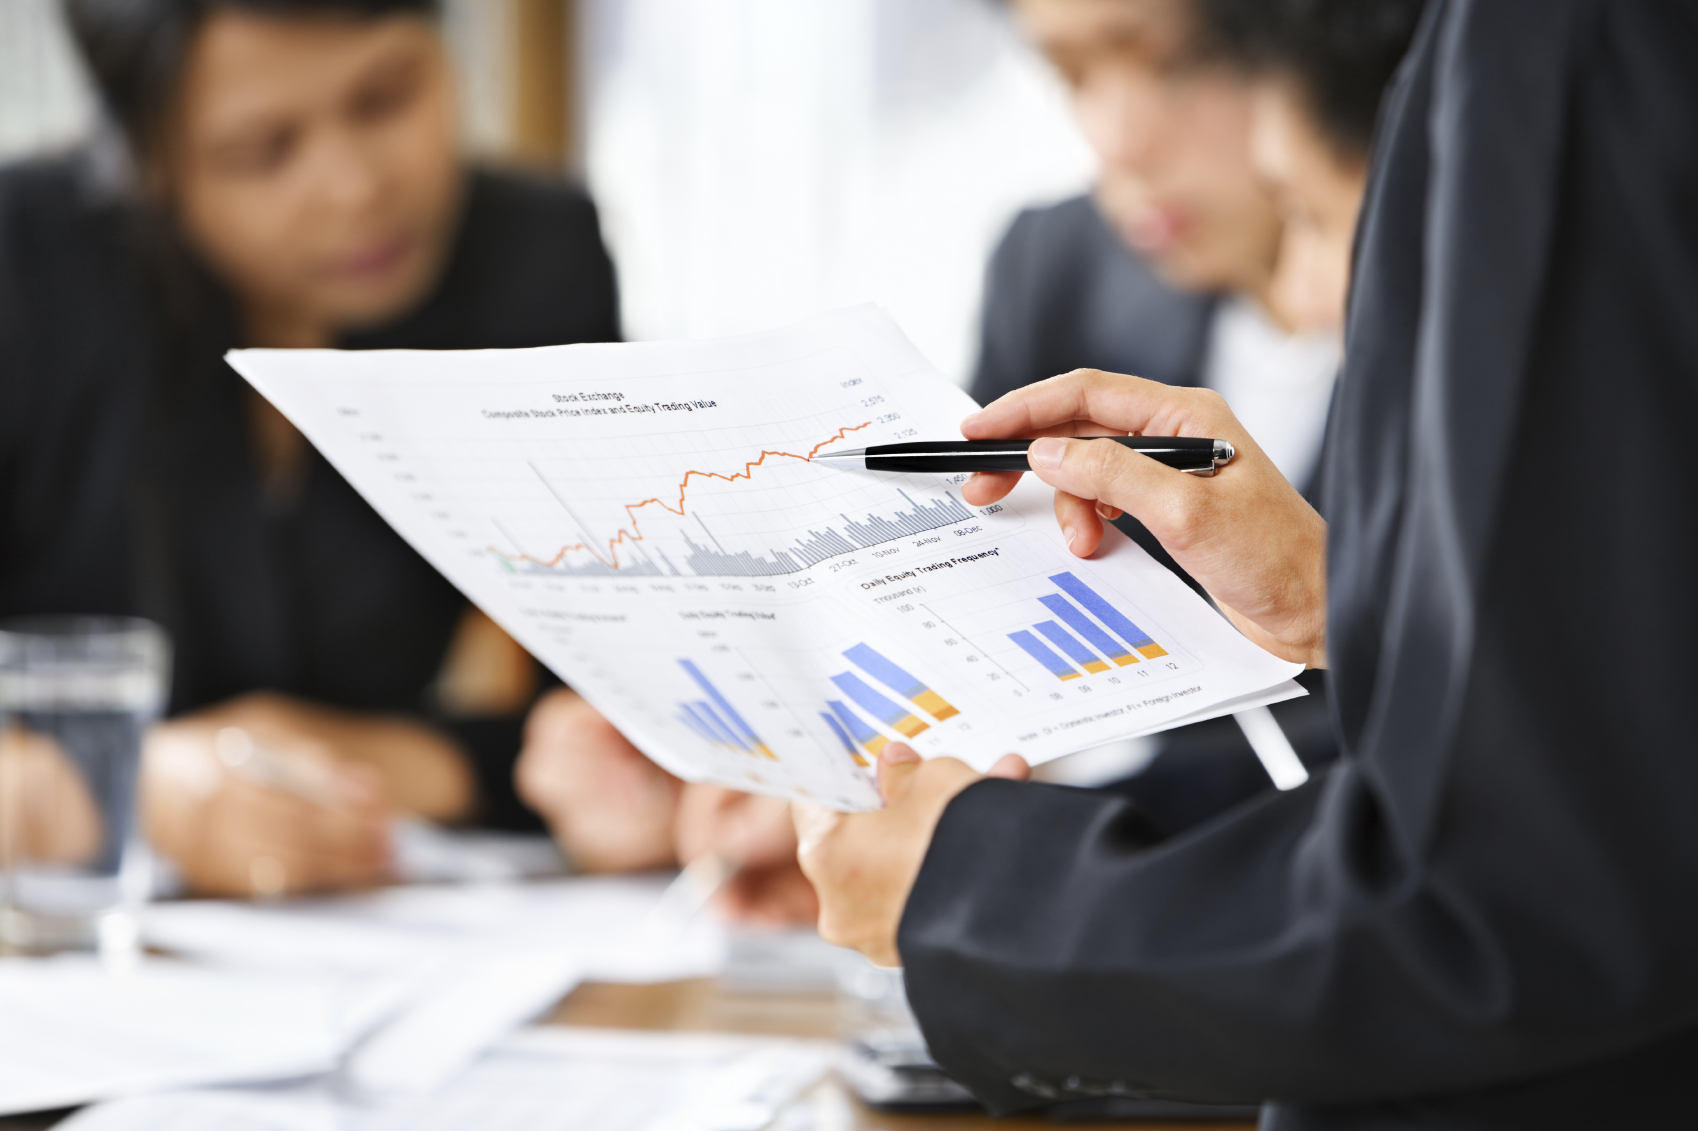 A business person, pointing to graphs and charts